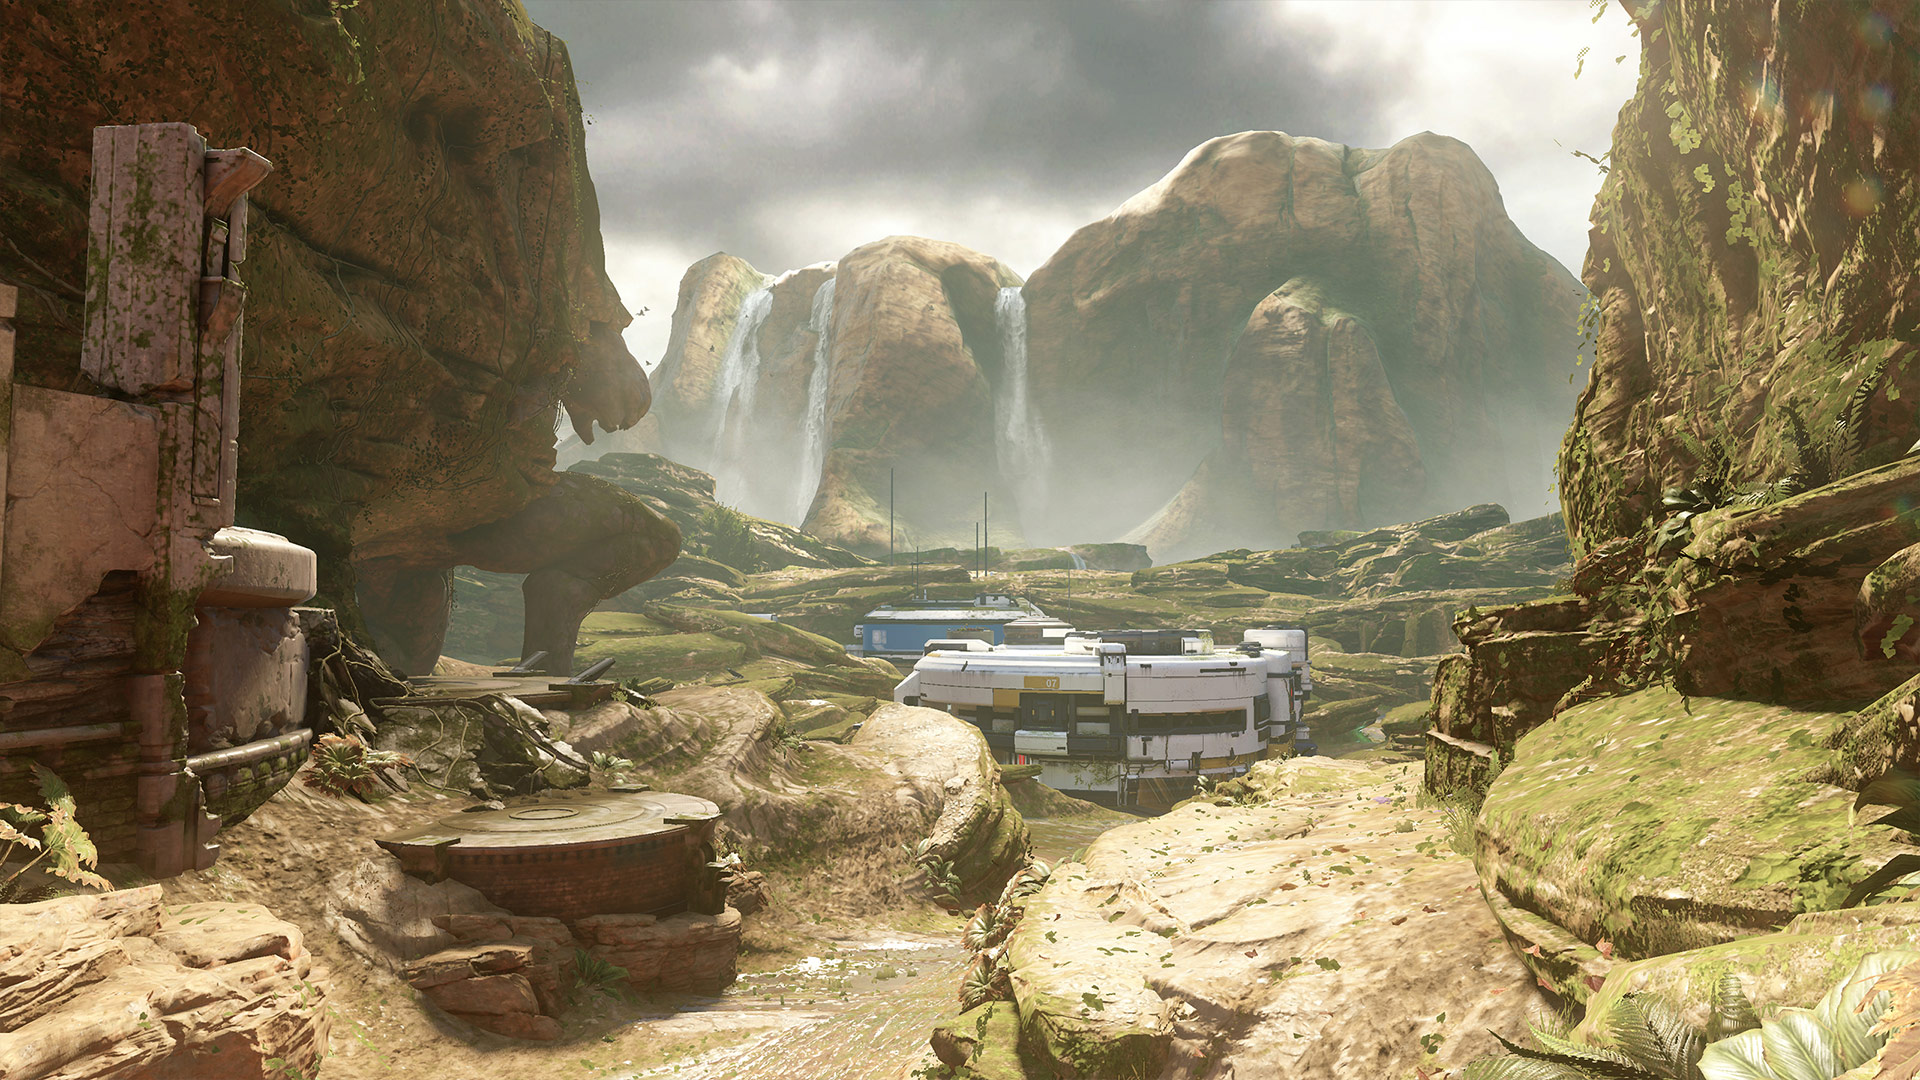 warzone firefight games halo official site